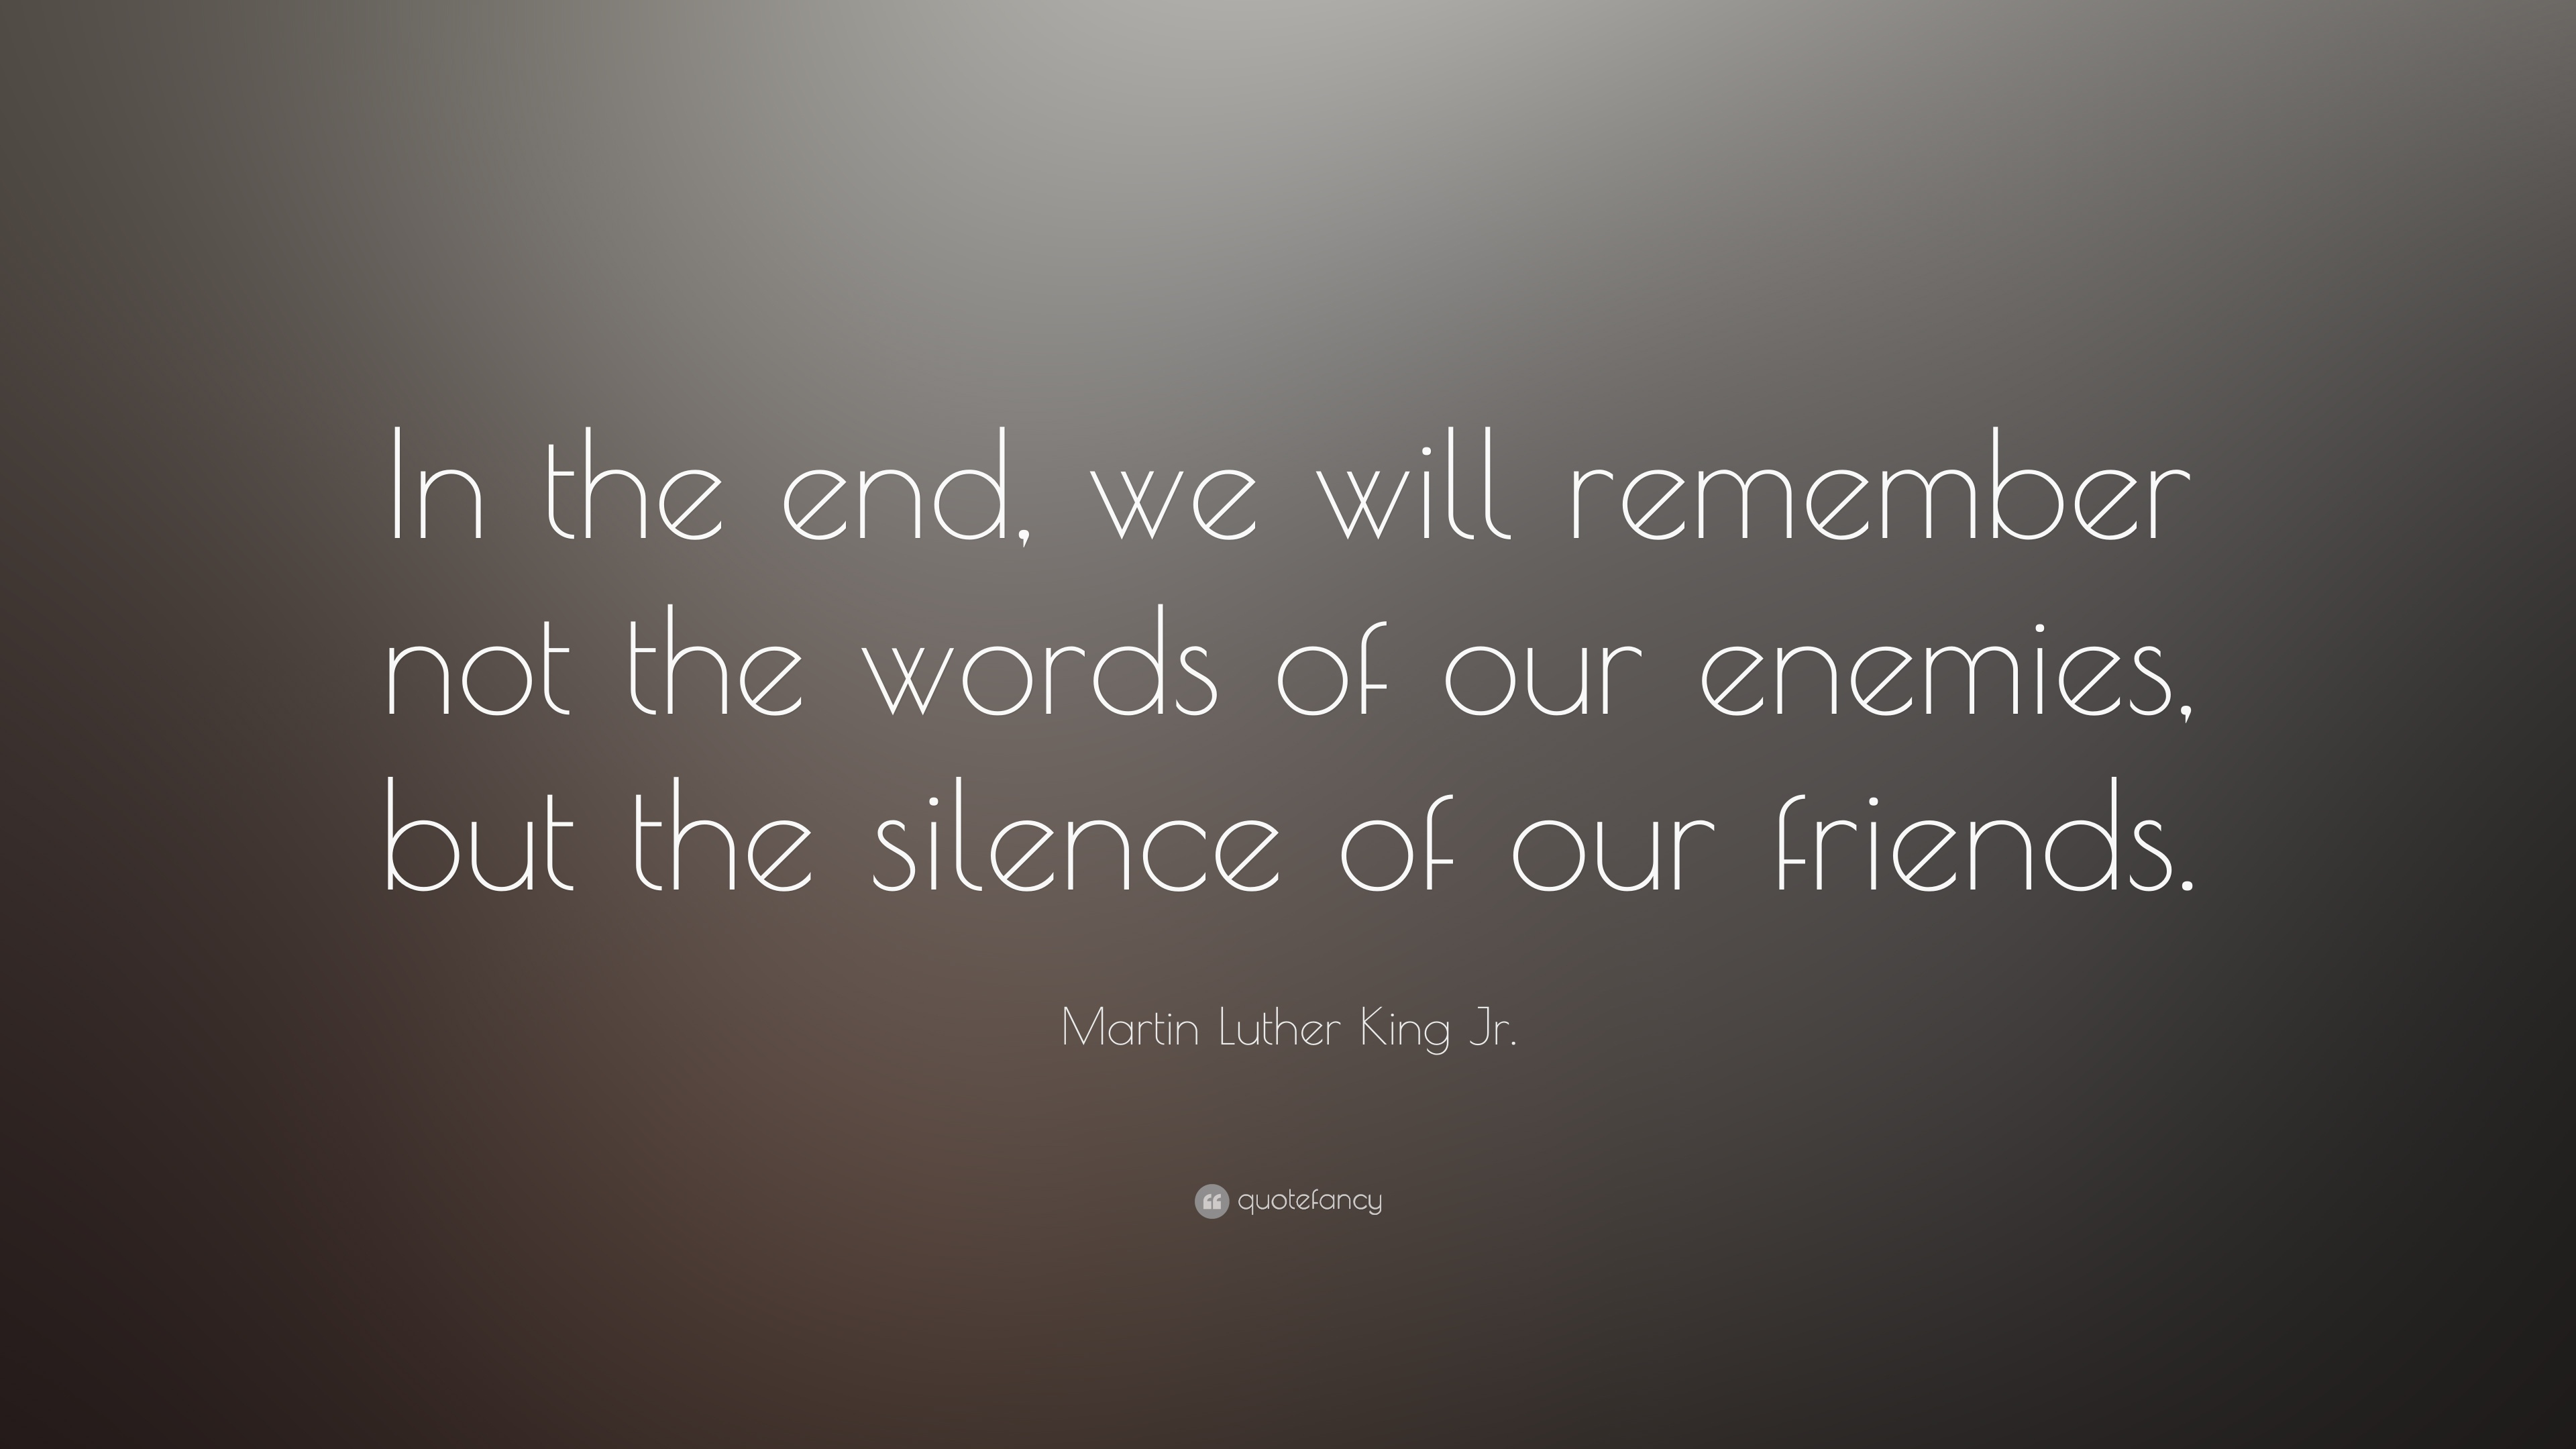 Martin Luther King Jr Quote In The End We Will Remember Not The